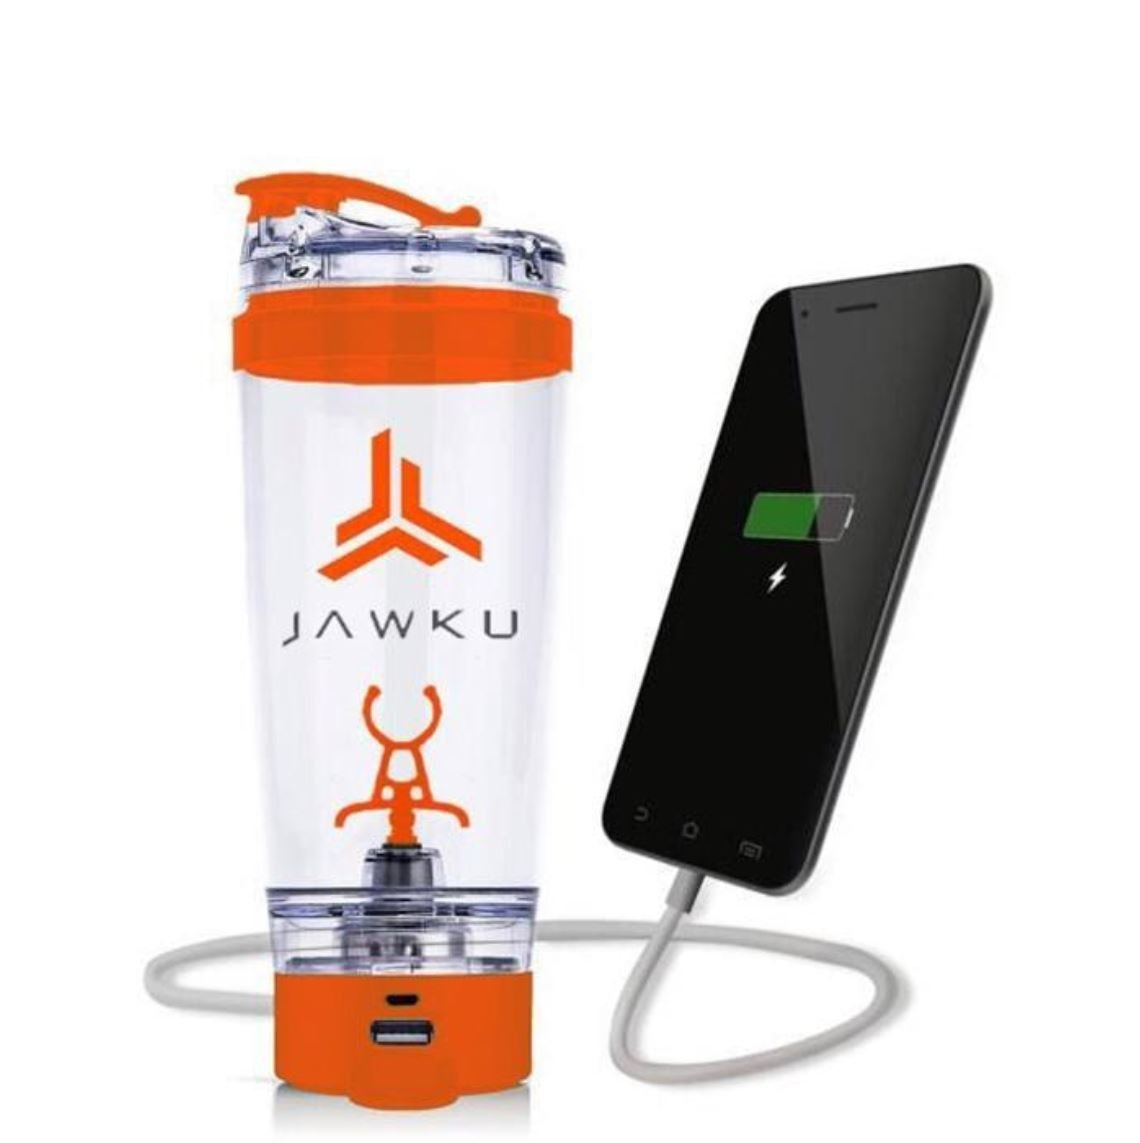 JAWKU Power Shaker Bottle Now with Dry Storage Container // A Powerful 11,000 RPM Mixer and Built-in Charger for Your Devices / 600ml (20oz.) BPA Free/New Dry Storage Container